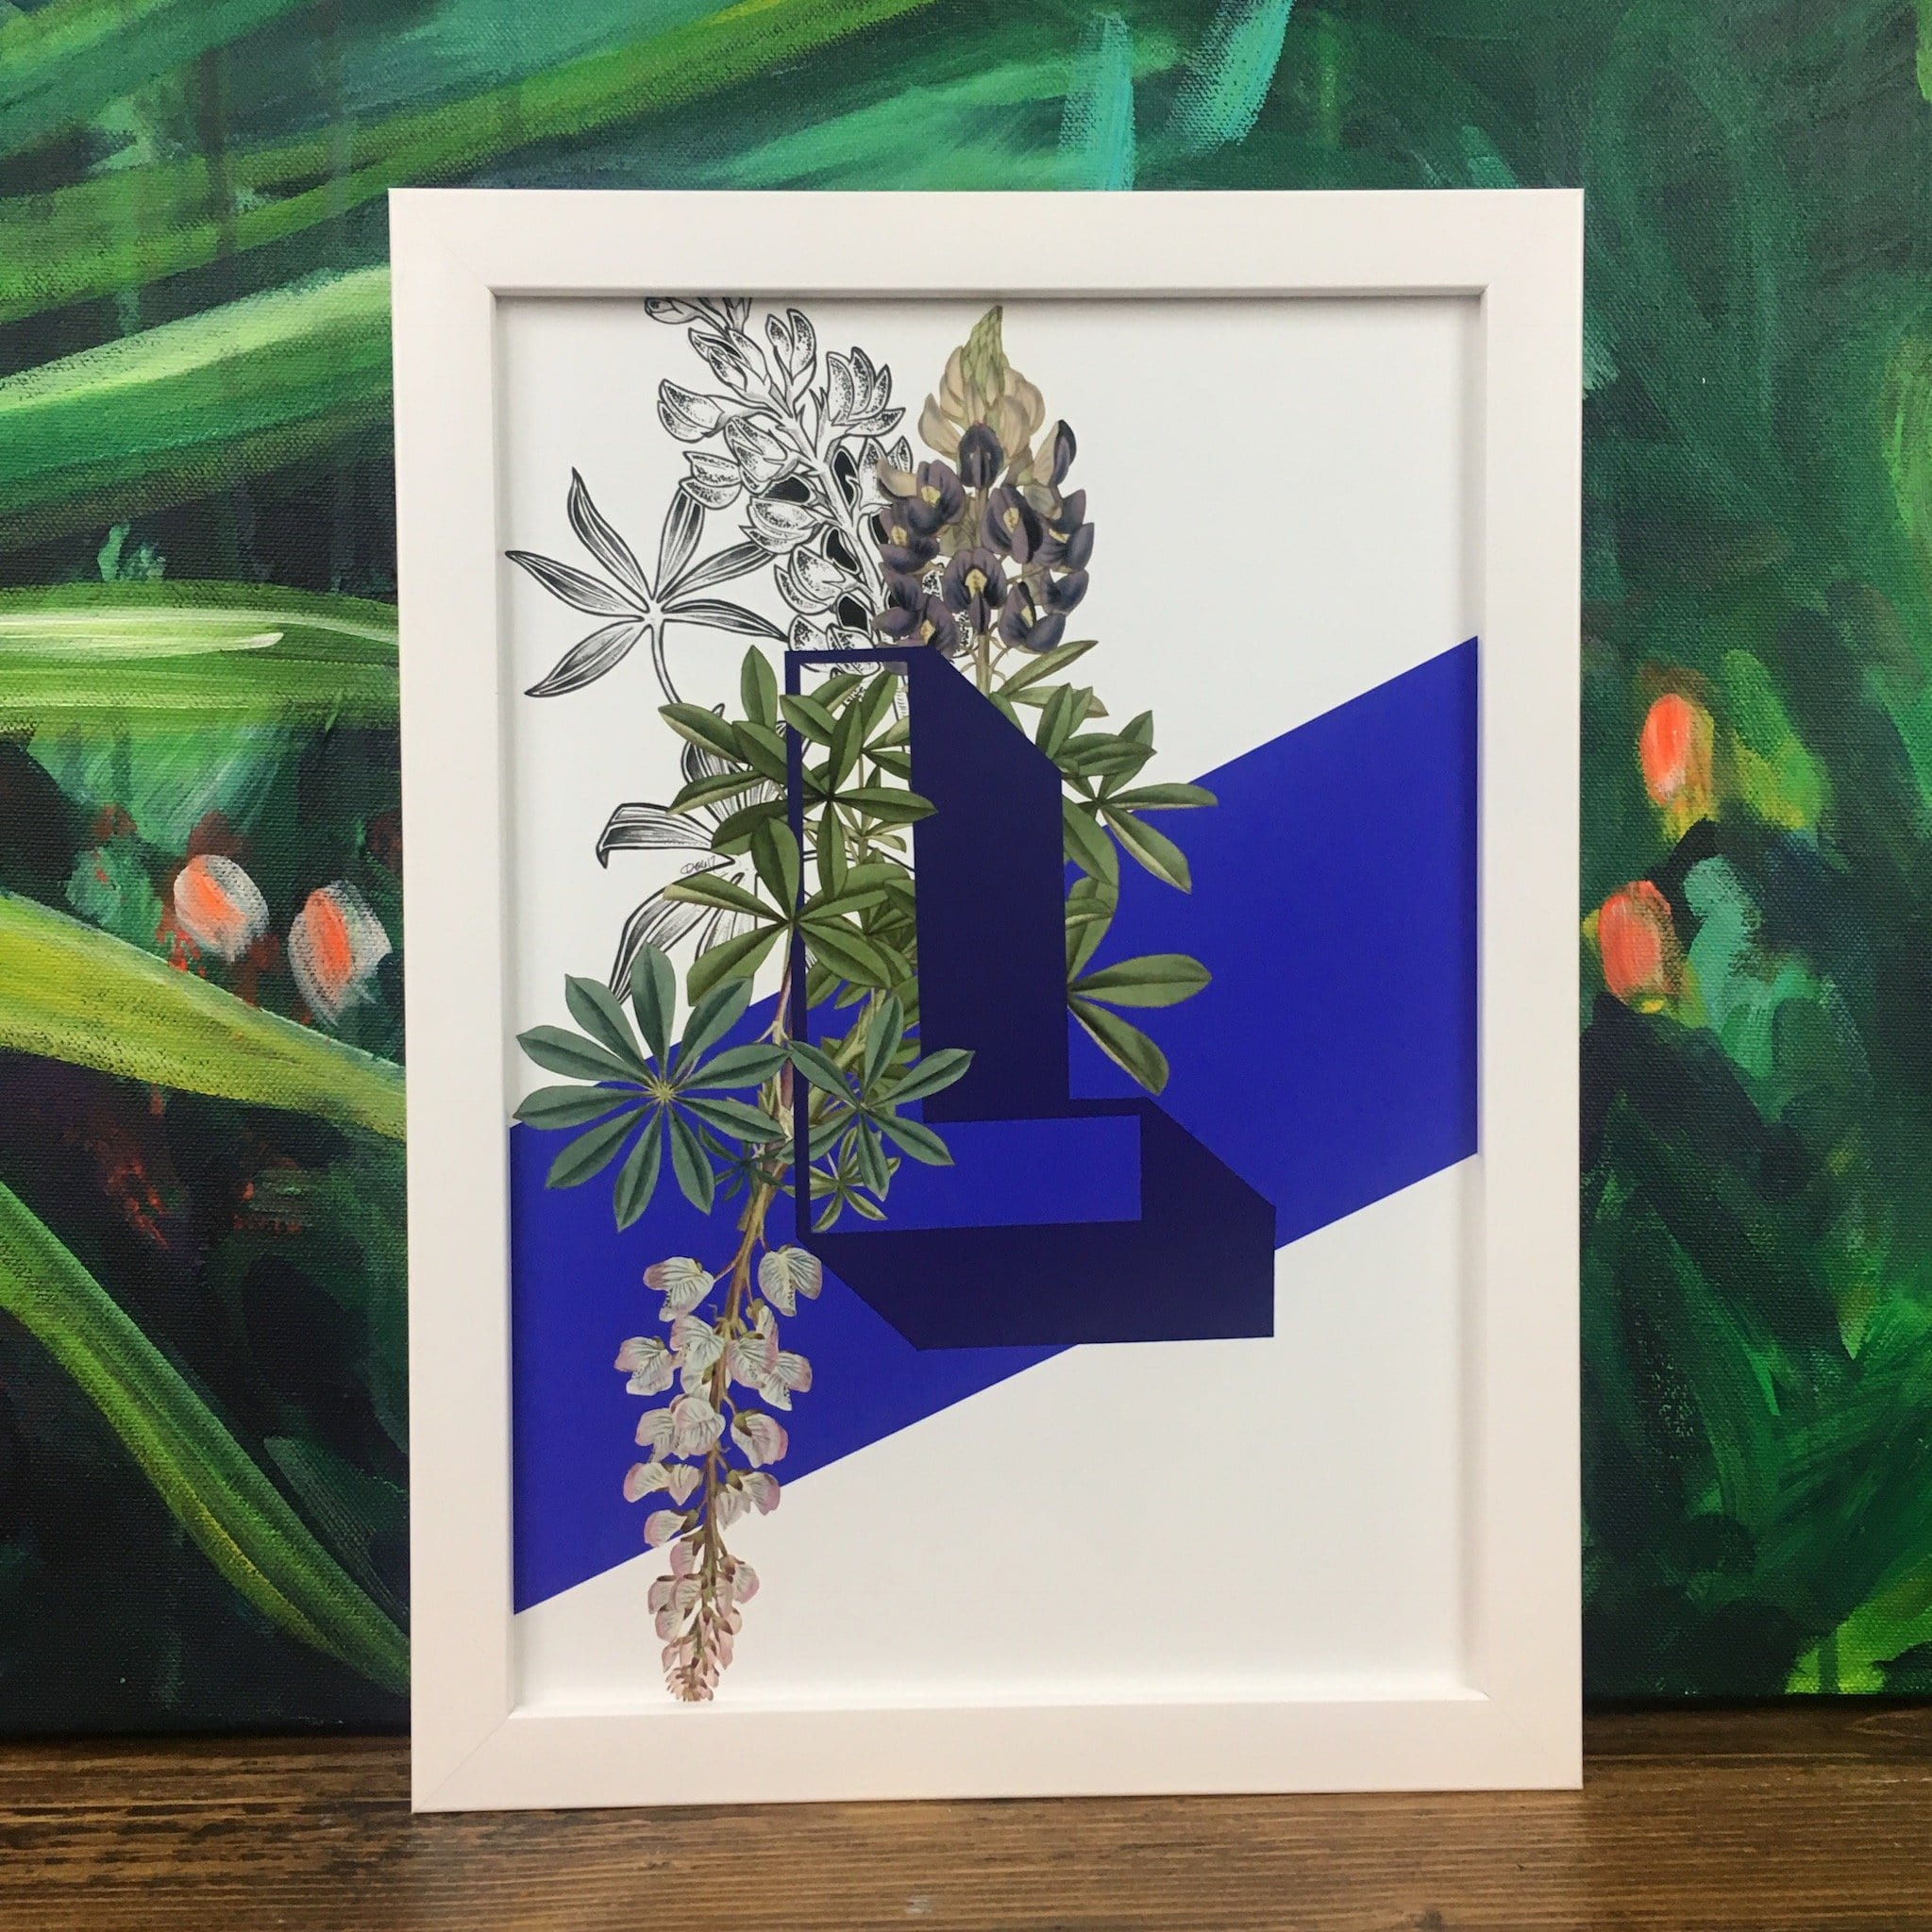 This image contains Green,Majorelle blue,Painting,Picture frame,Botany,Leaf